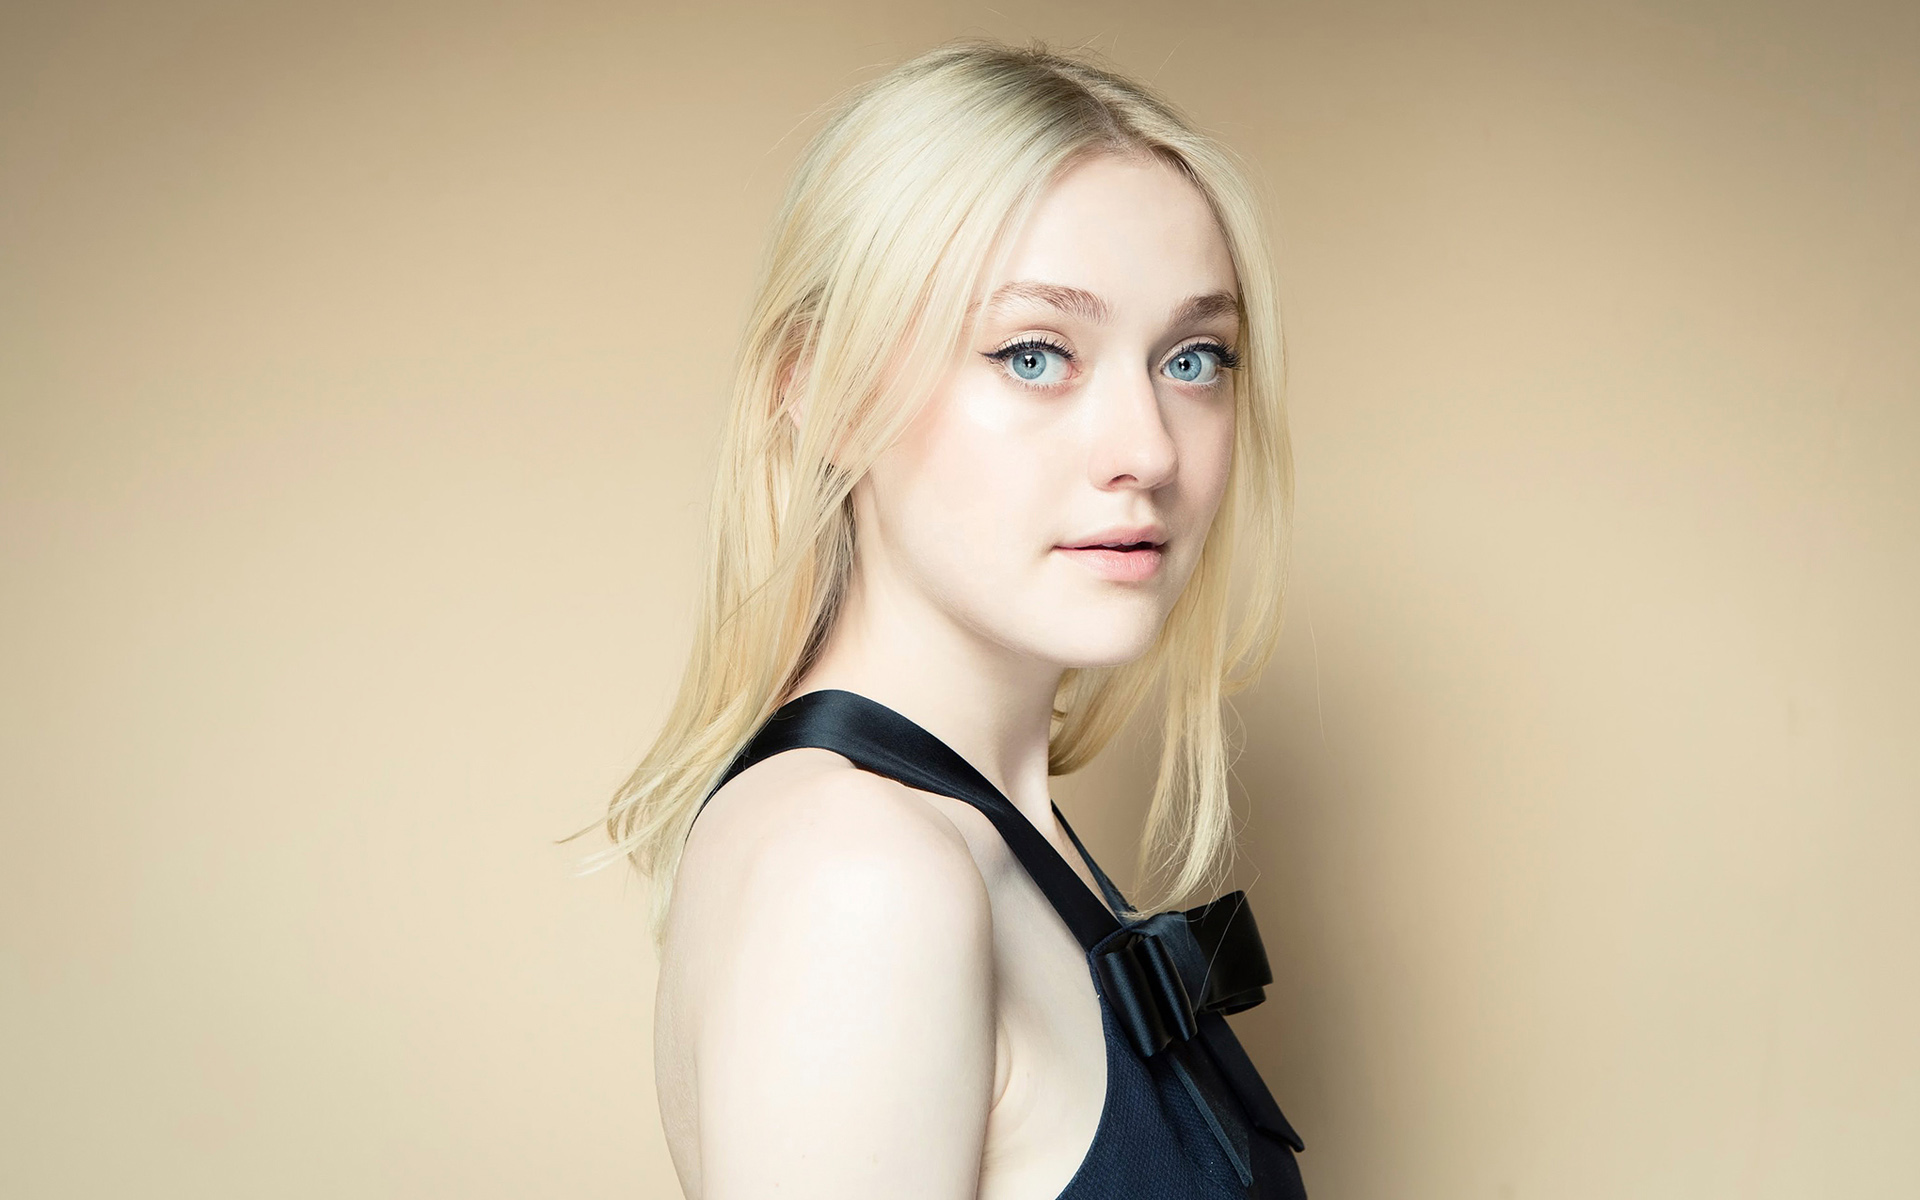 dakota fanning desktop wallpaper 50137